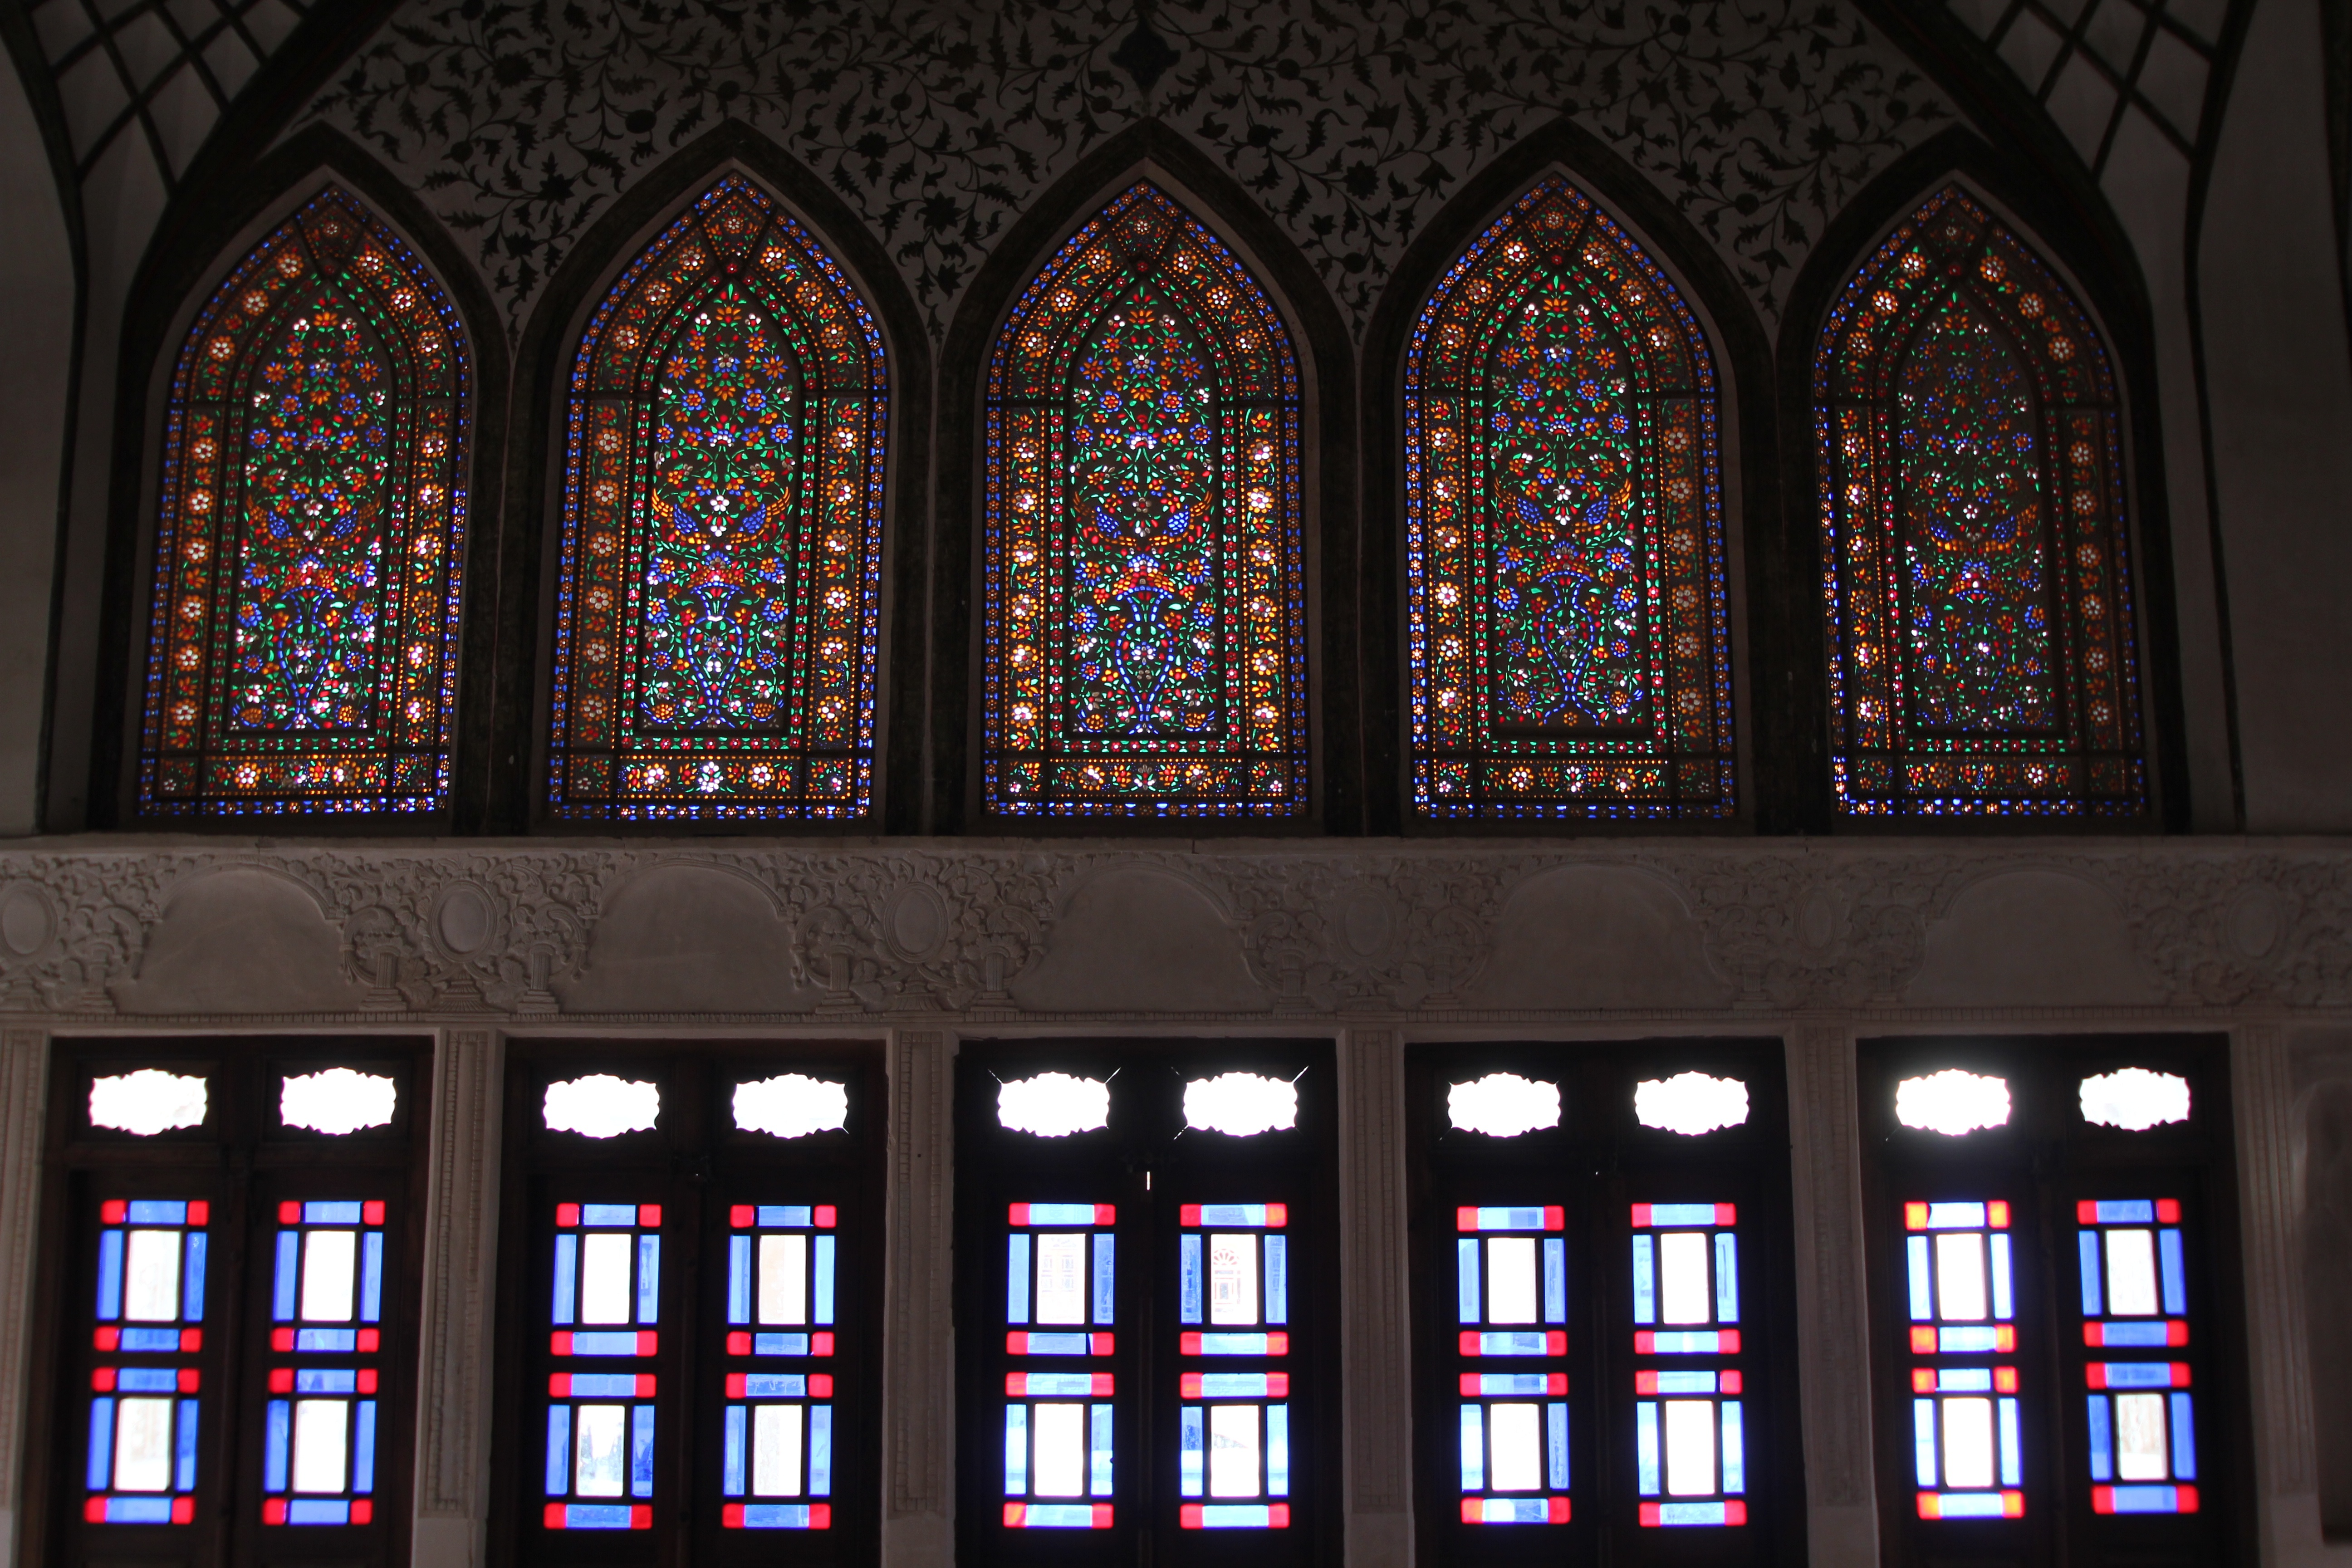 https://upload.wikimedia.org/wikipedia/commons/c/c7/Stained_glass_work_at_the_Tab%C4%81tab%C4%81ei_House%2C_Kashan.jpg